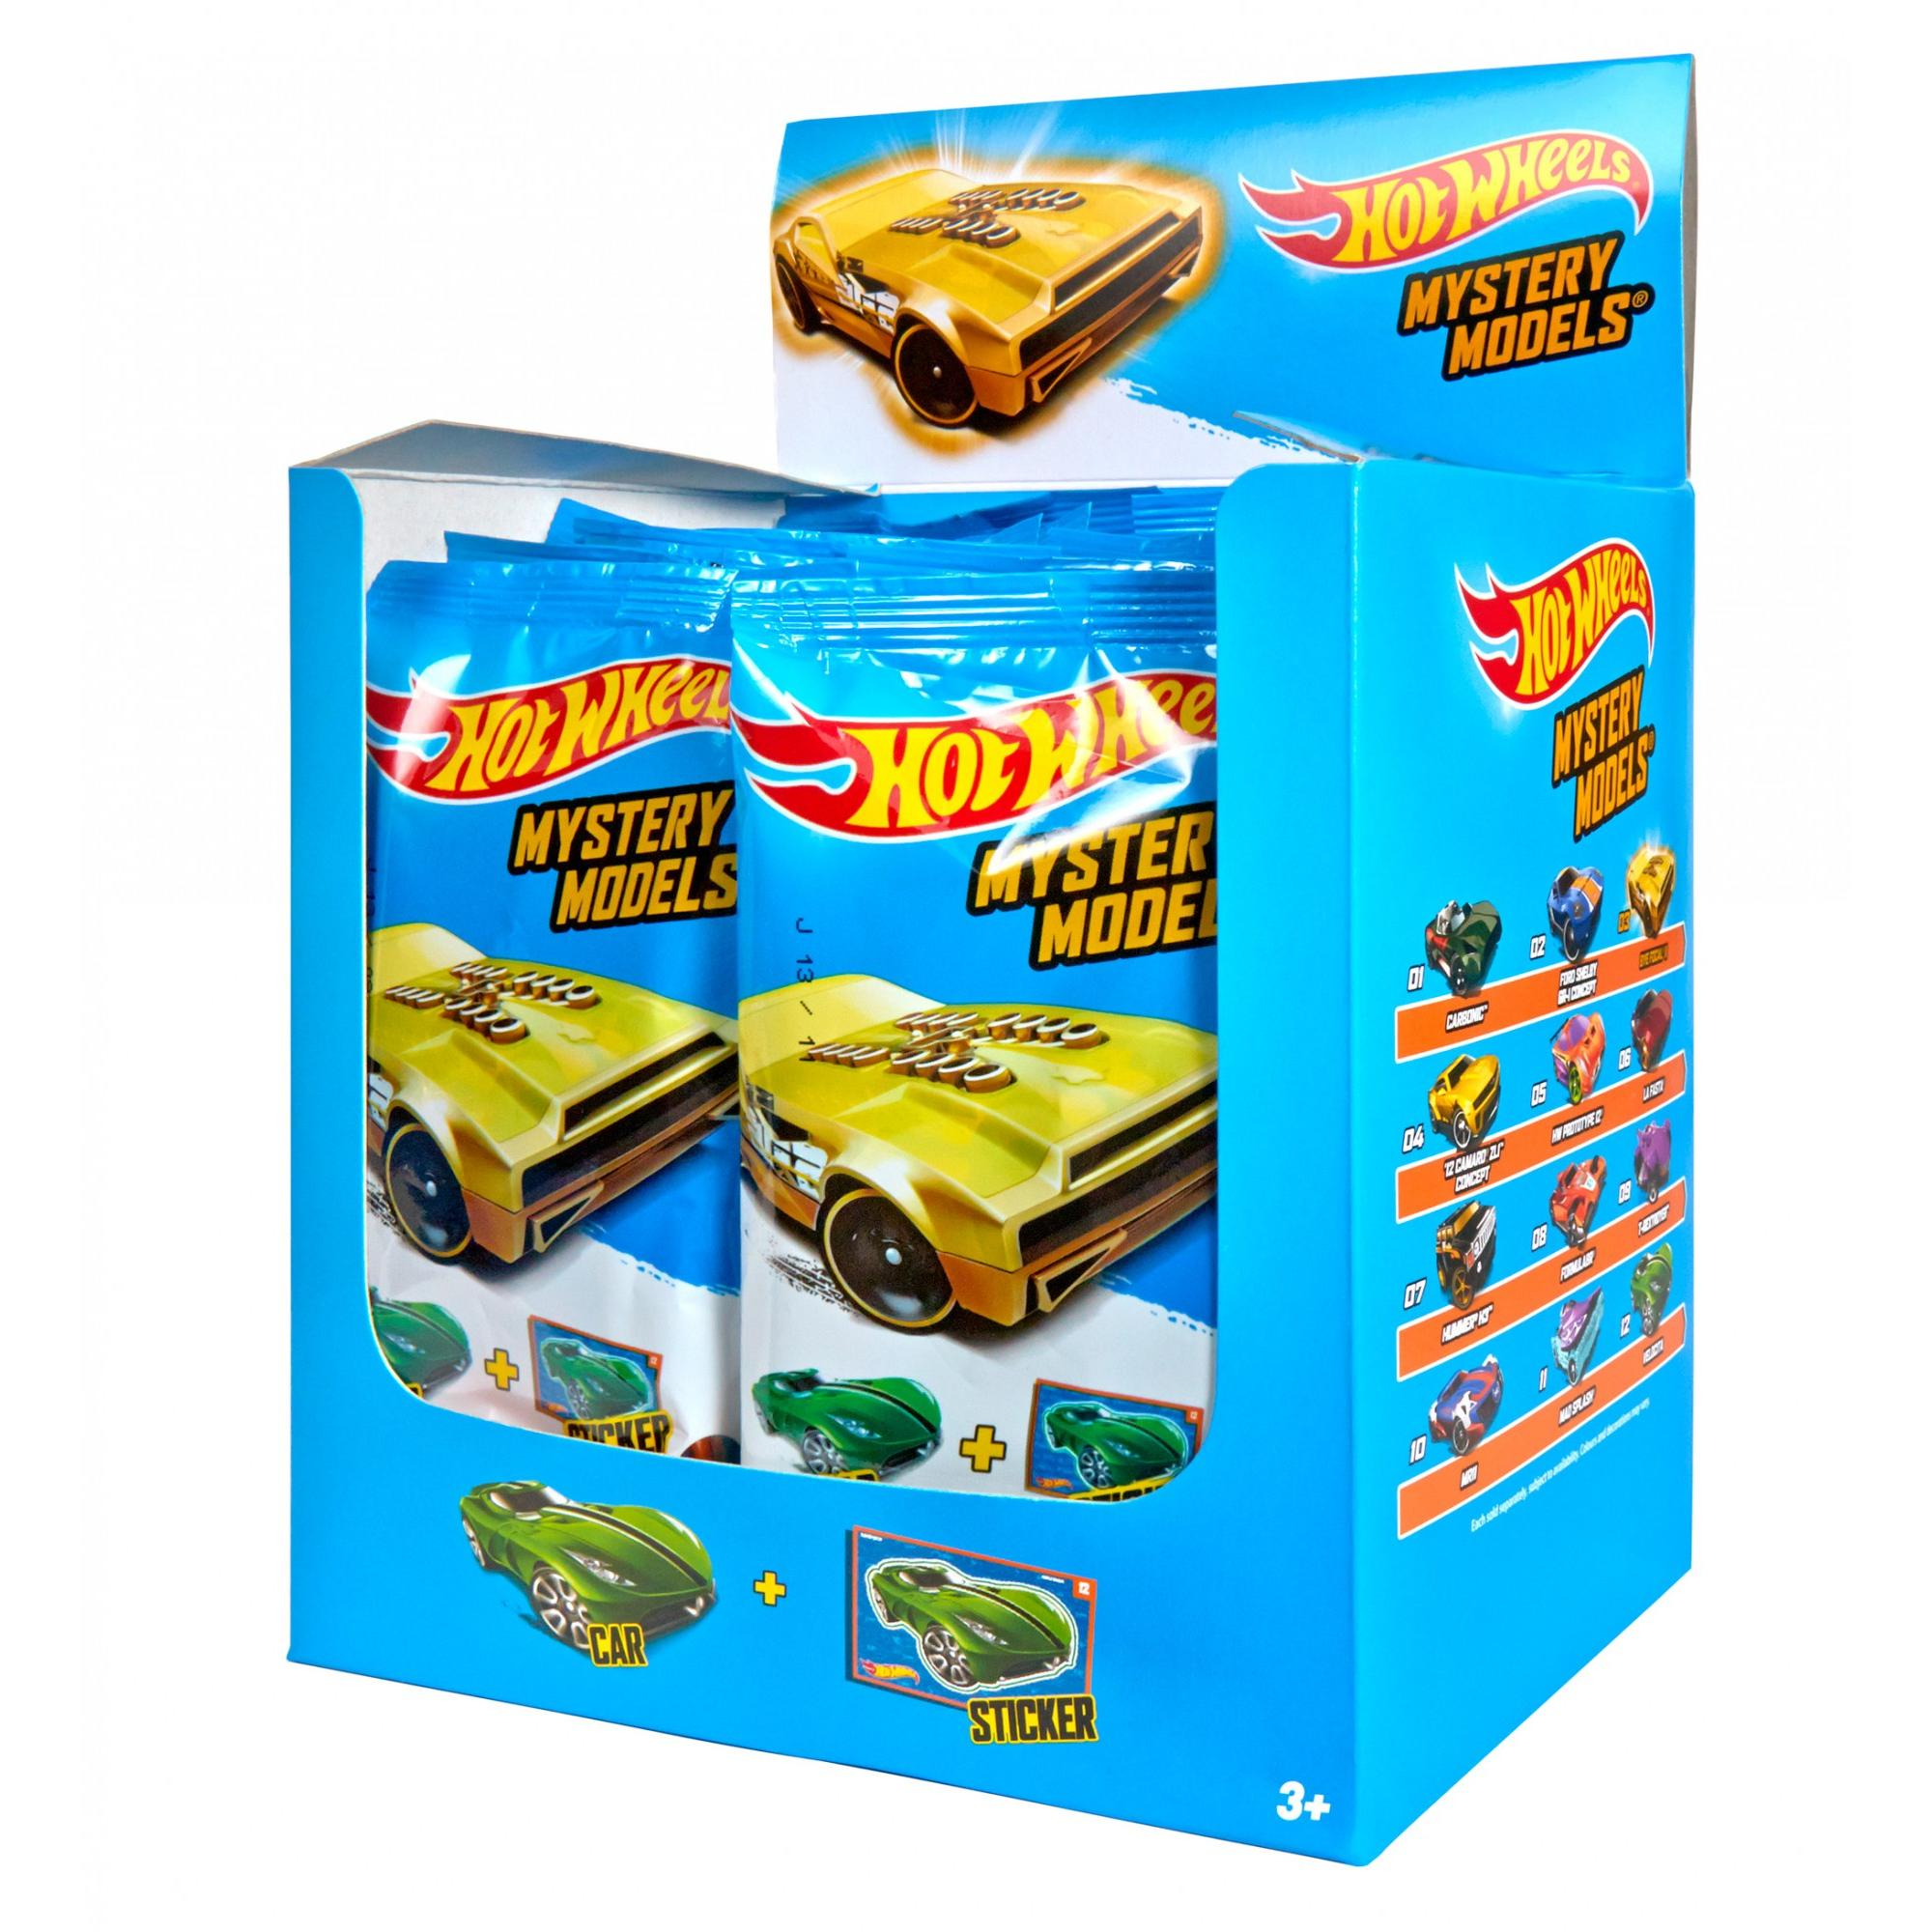 Hot Wheels Mystery Models Diecast Vehicle (Styles May Vary)